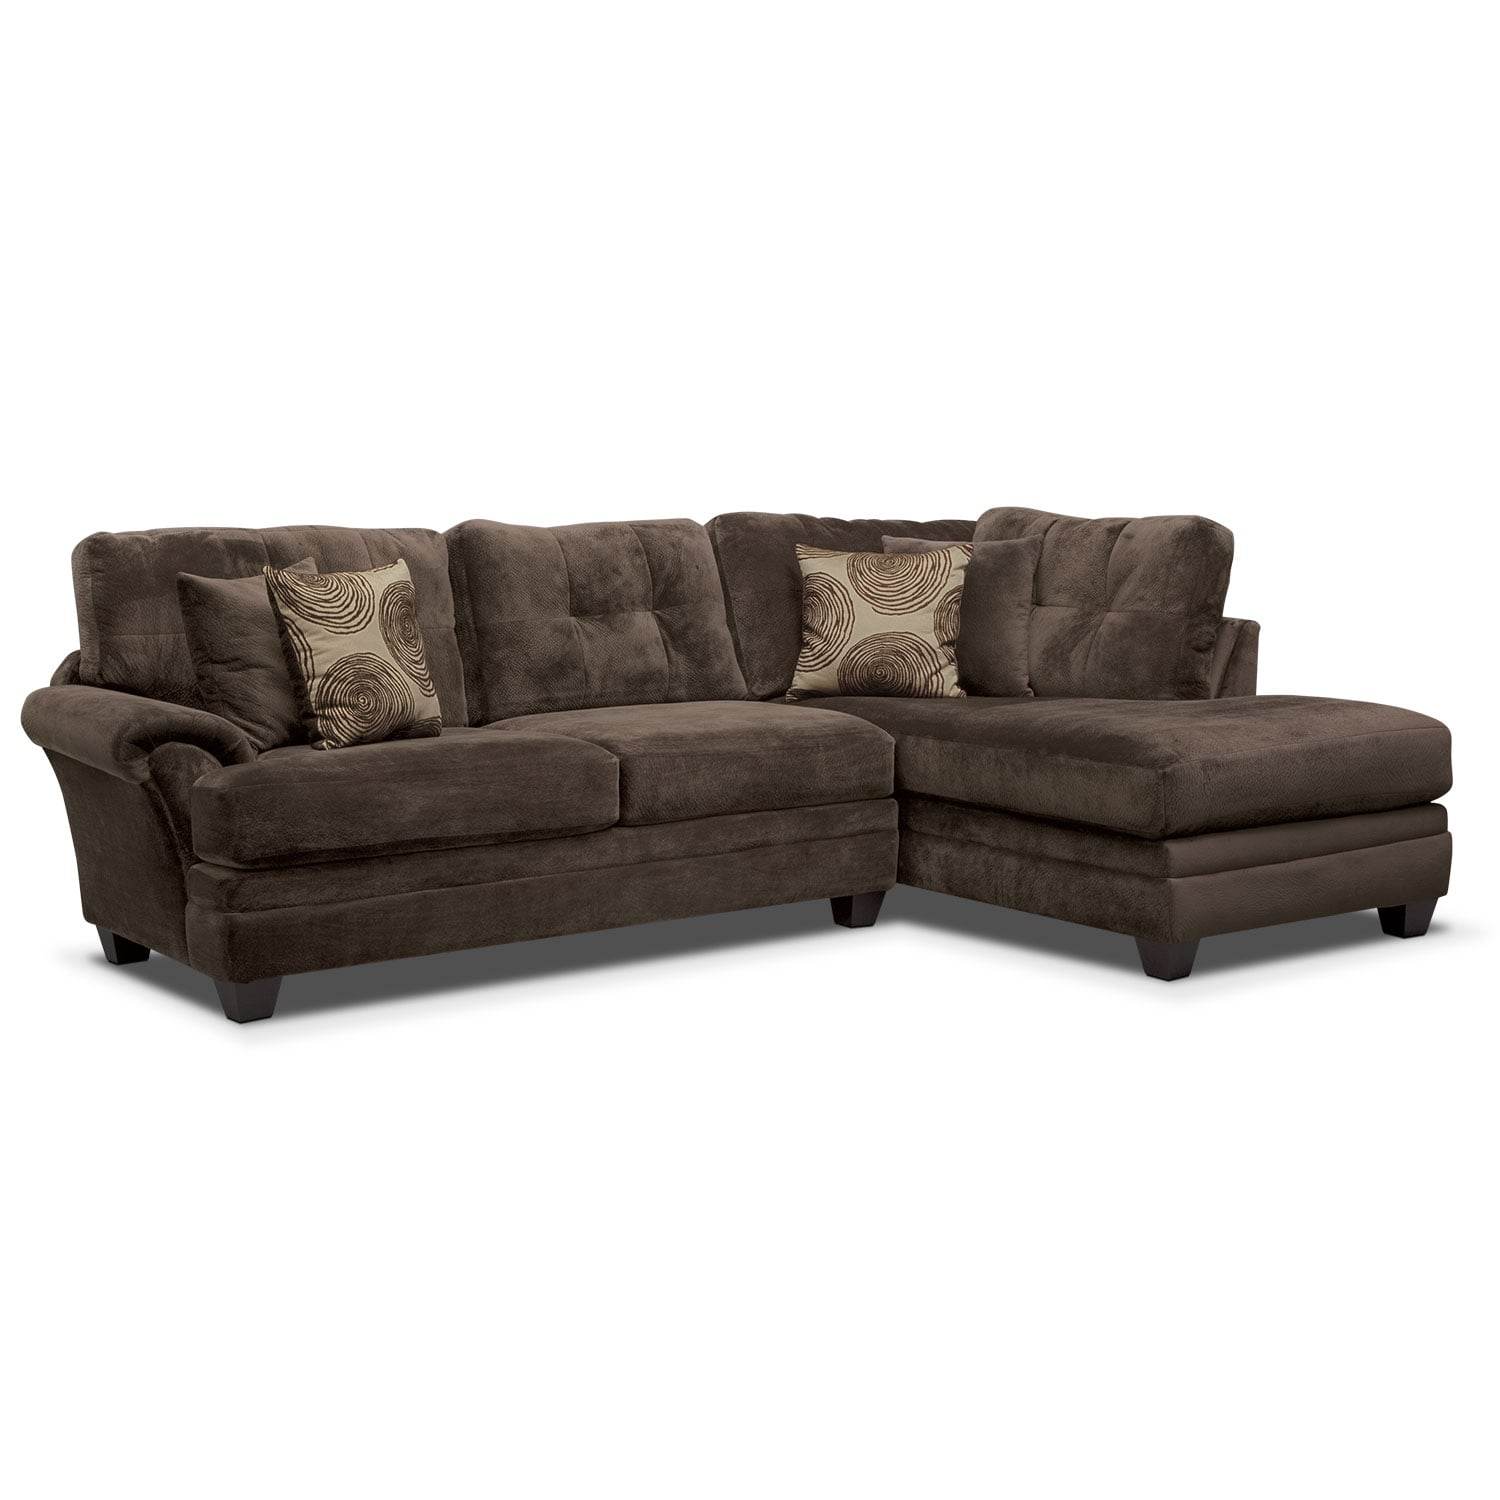 Admirable Cordelle 2 Piece Sectional With Chaise Short Links Chair Design For Home Short Linksinfo